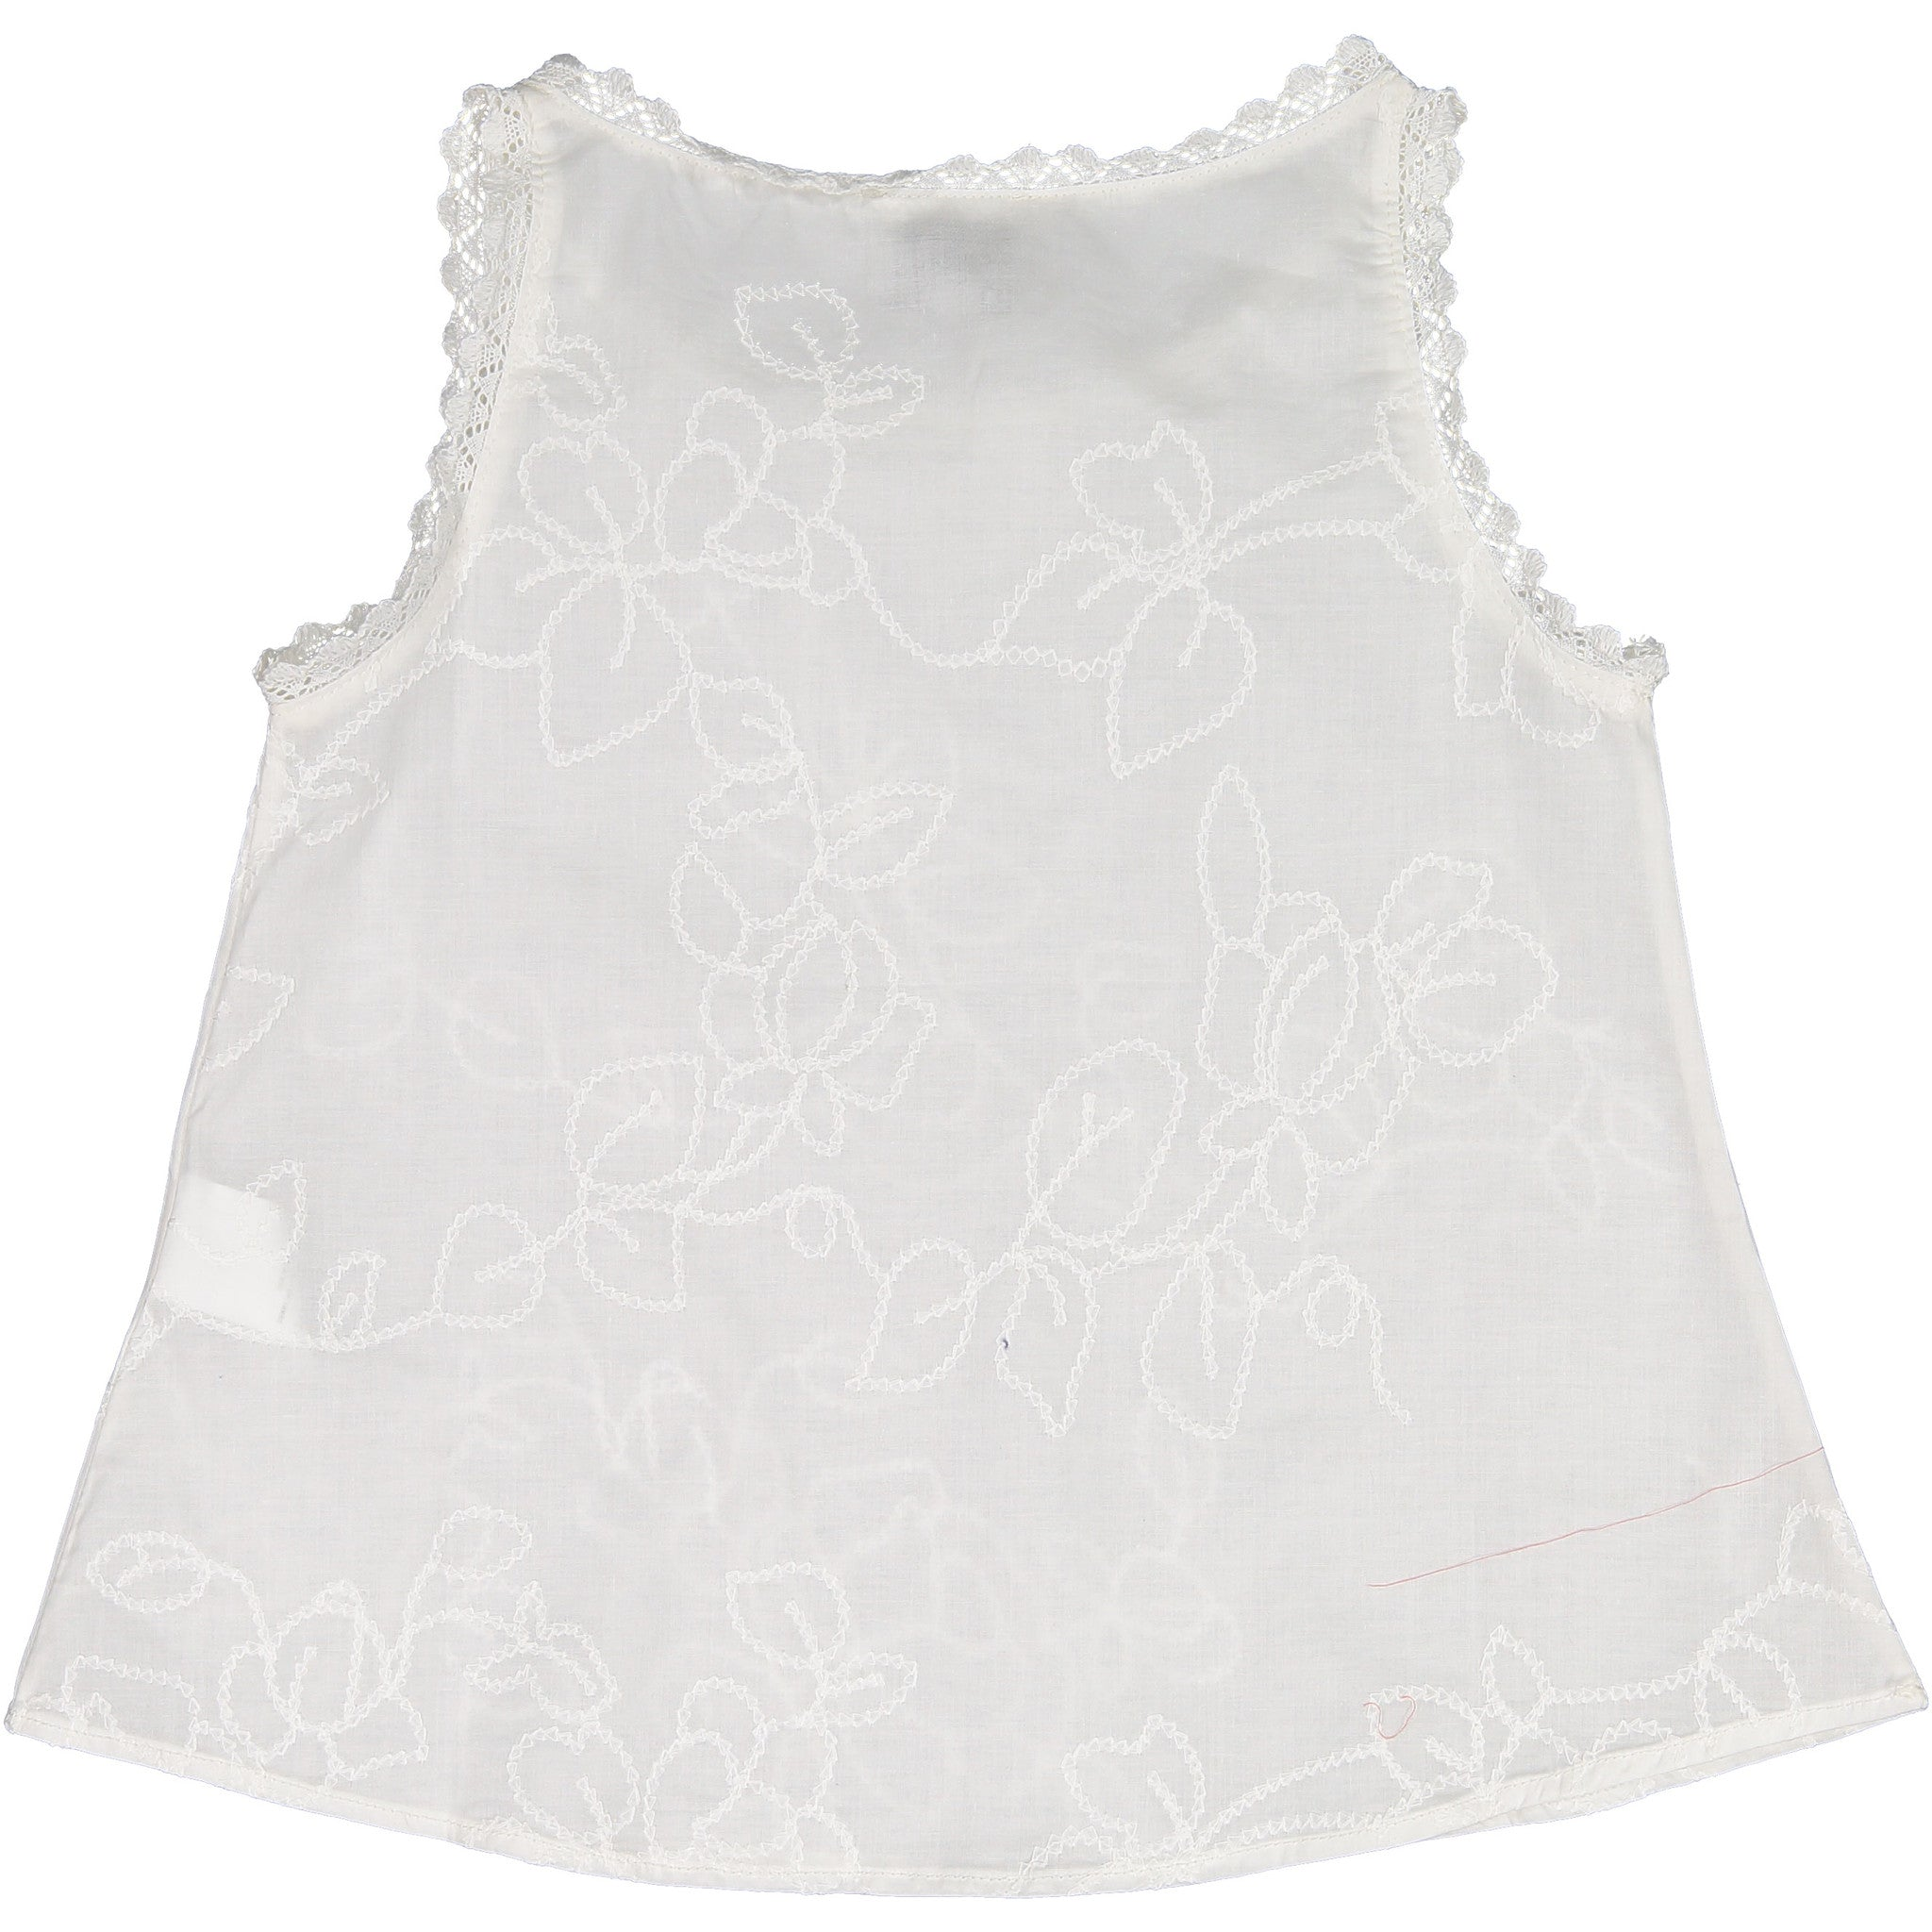 Atelier Barn White Embroidered Top